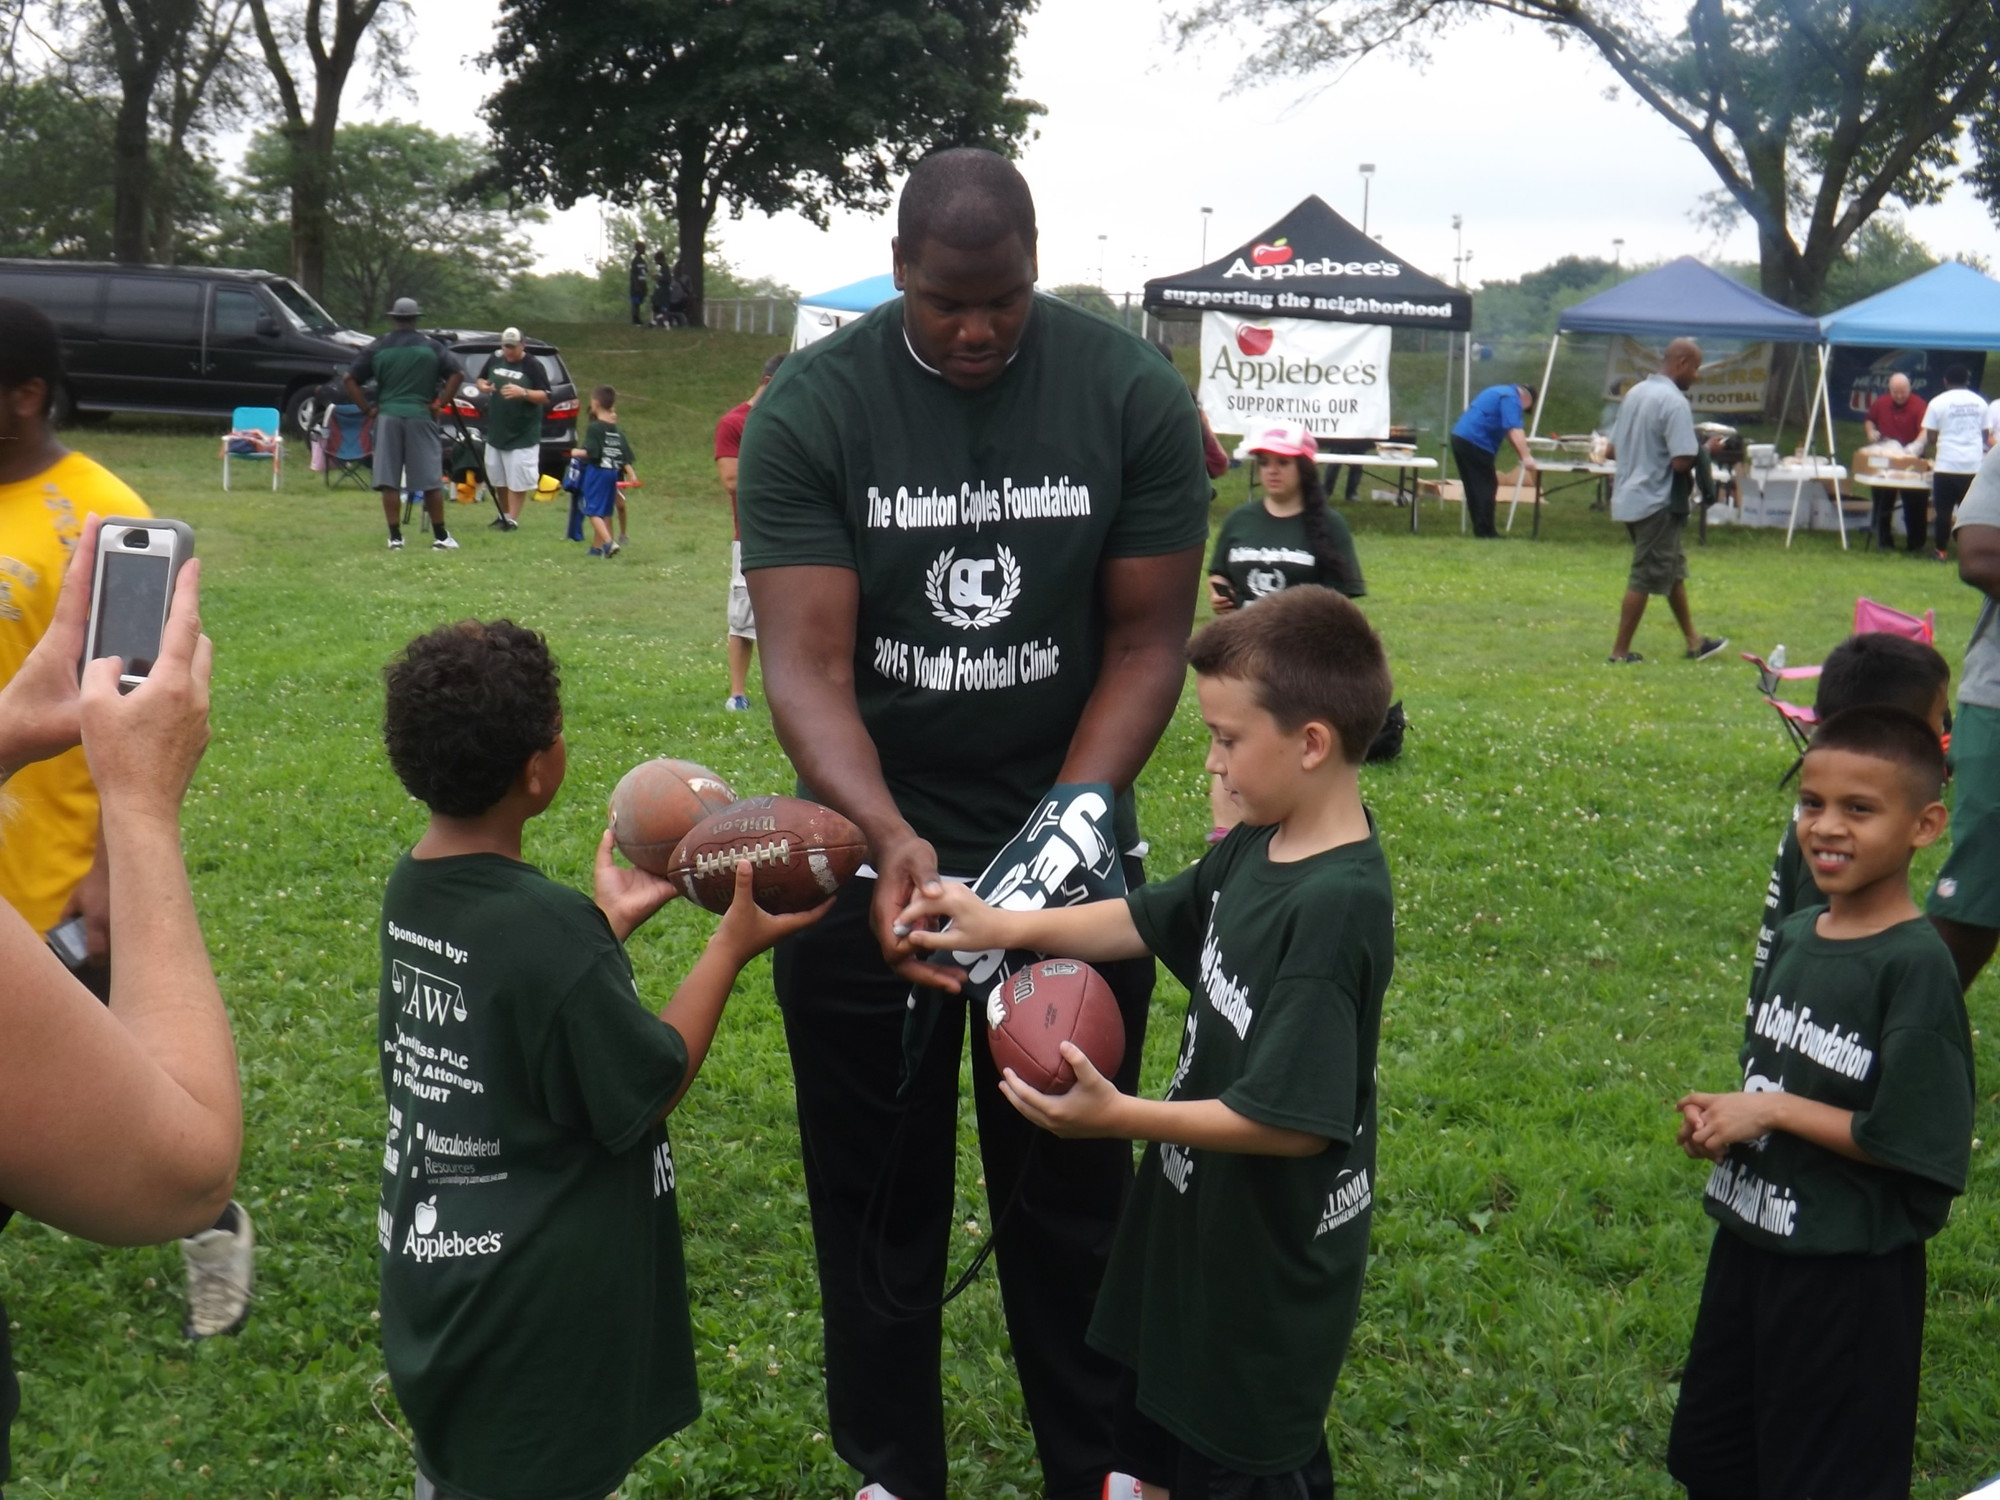 D'Brickashaw Ferguson, a Jets offensive lineman from Freeport, signed dozens of autographs at the event.